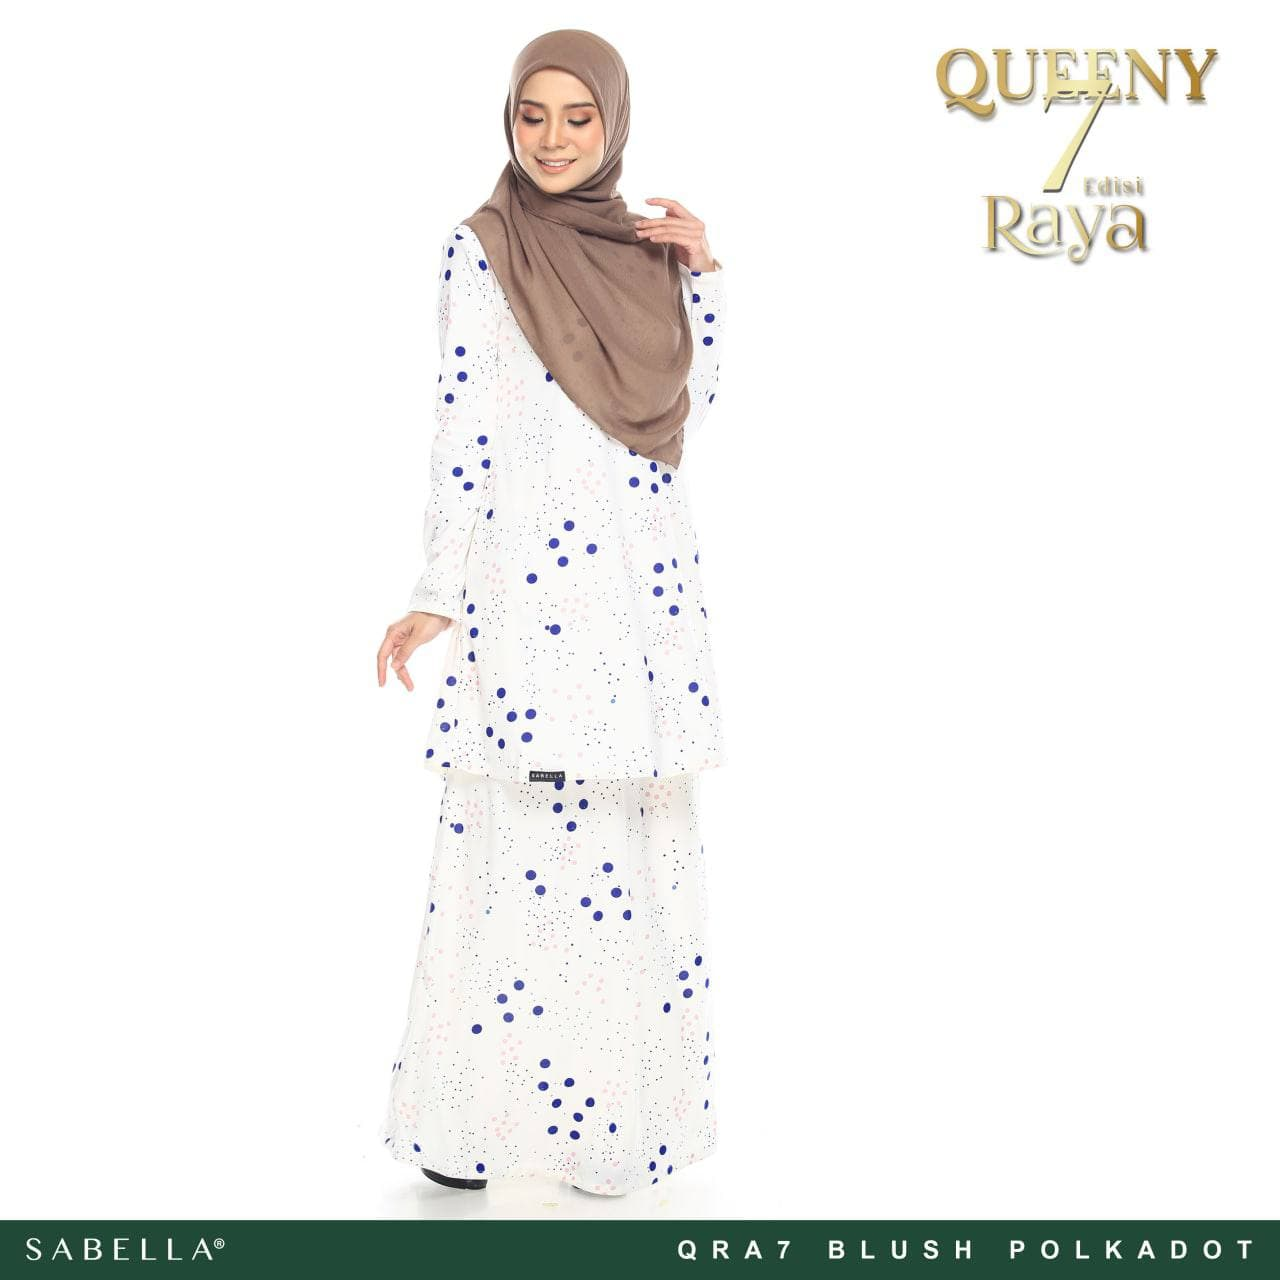 Queeny Raya 7.0 Blush Polkadot